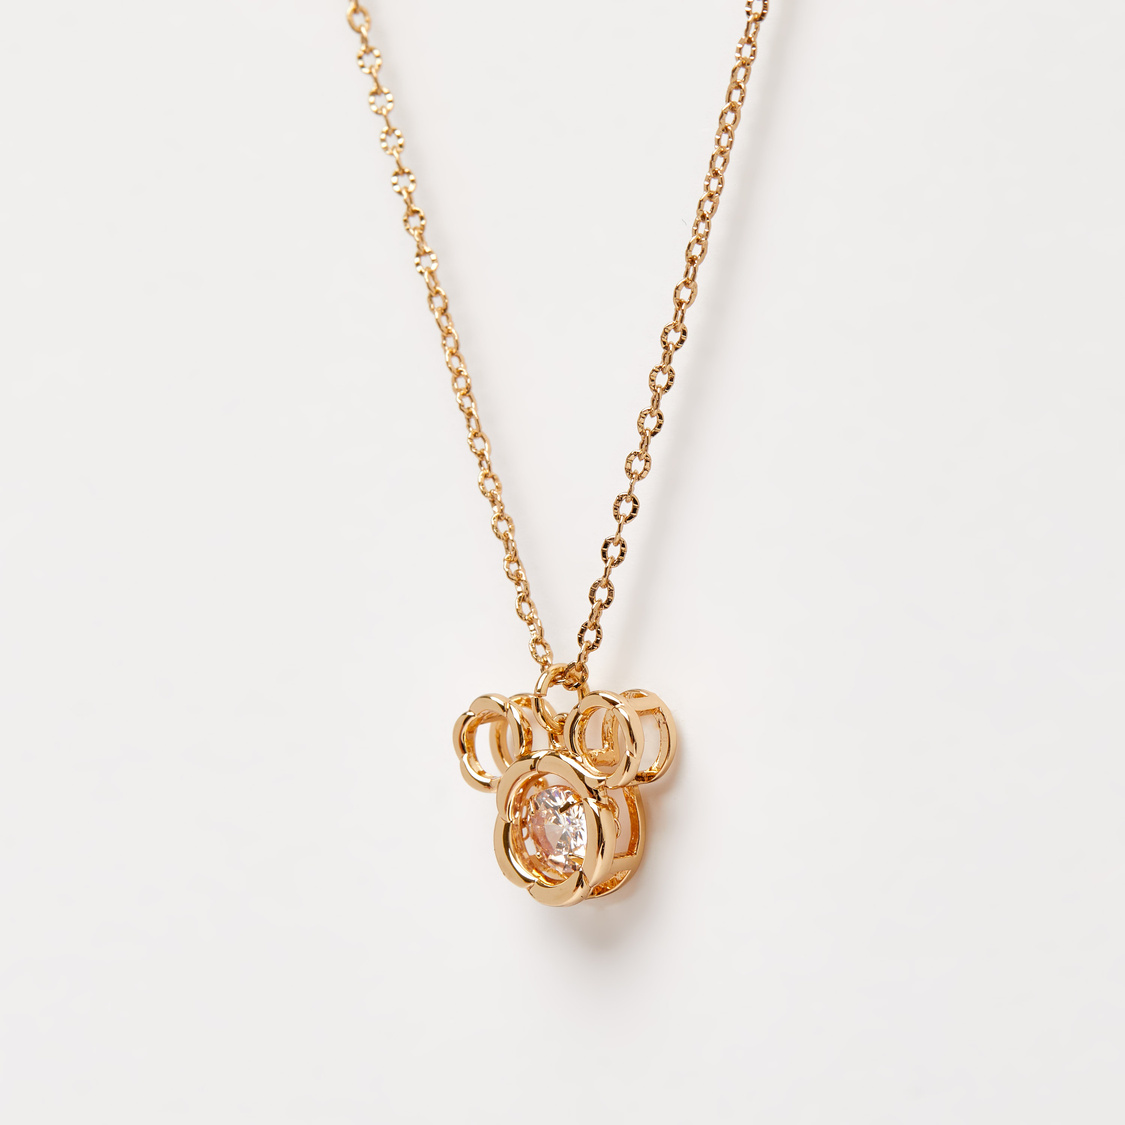 Lobster Clasp Necklace with Stone Studded Mickey Mouse Pendant